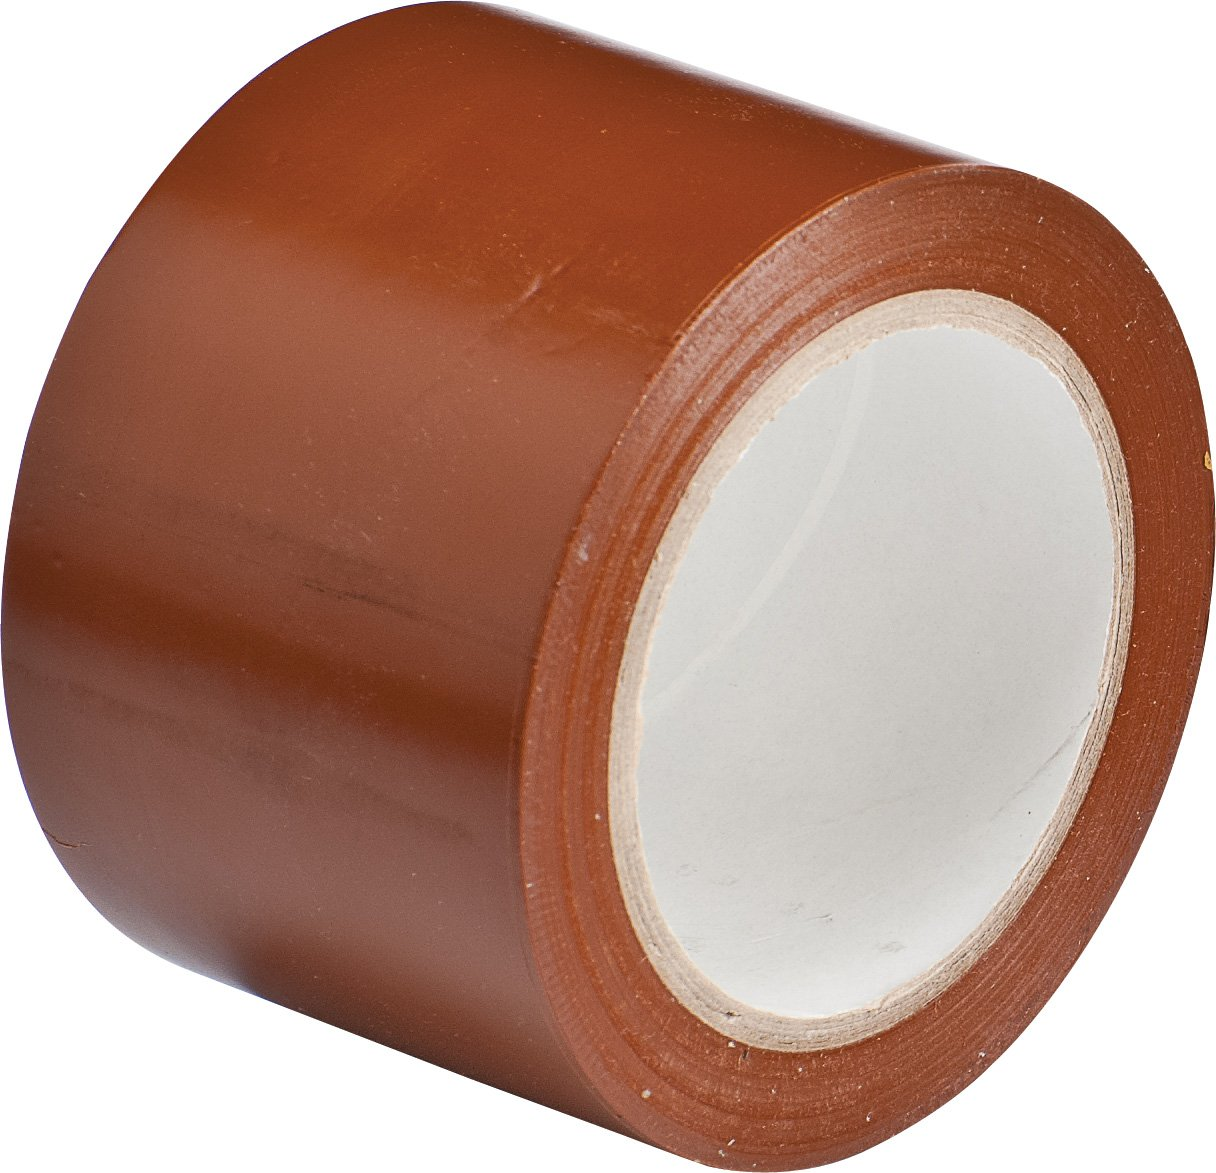 Brady 102832  Vinyl Tape 3'' x 36 Yards. Vinyl Aisle Marking Tape - 3'' Brown (1 Roll)